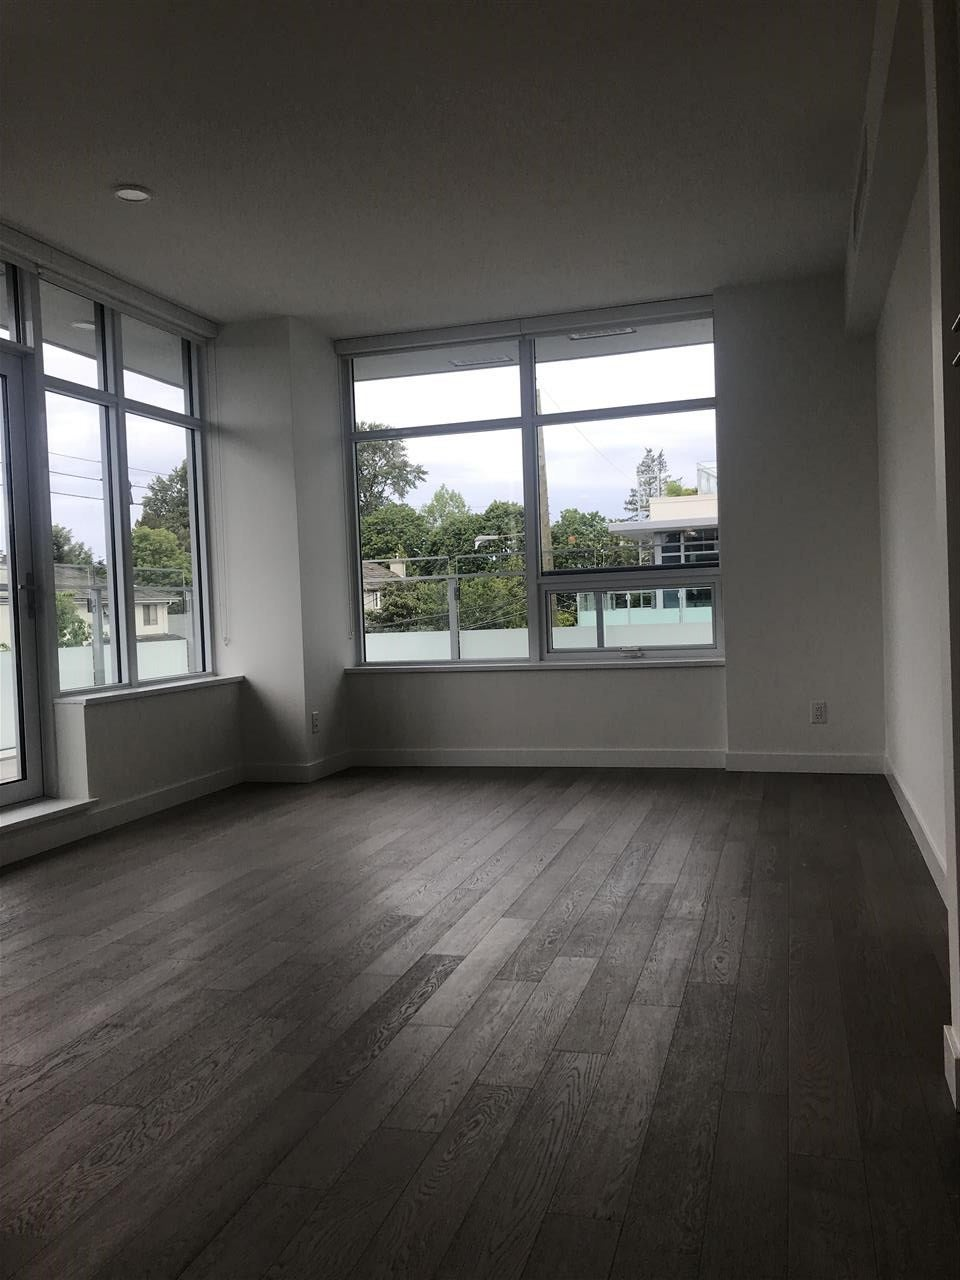 214 5033 CAMBIE STREET - Cambie Apartment/Condo for sale, 2 Bedrooms (R2459525) - #3